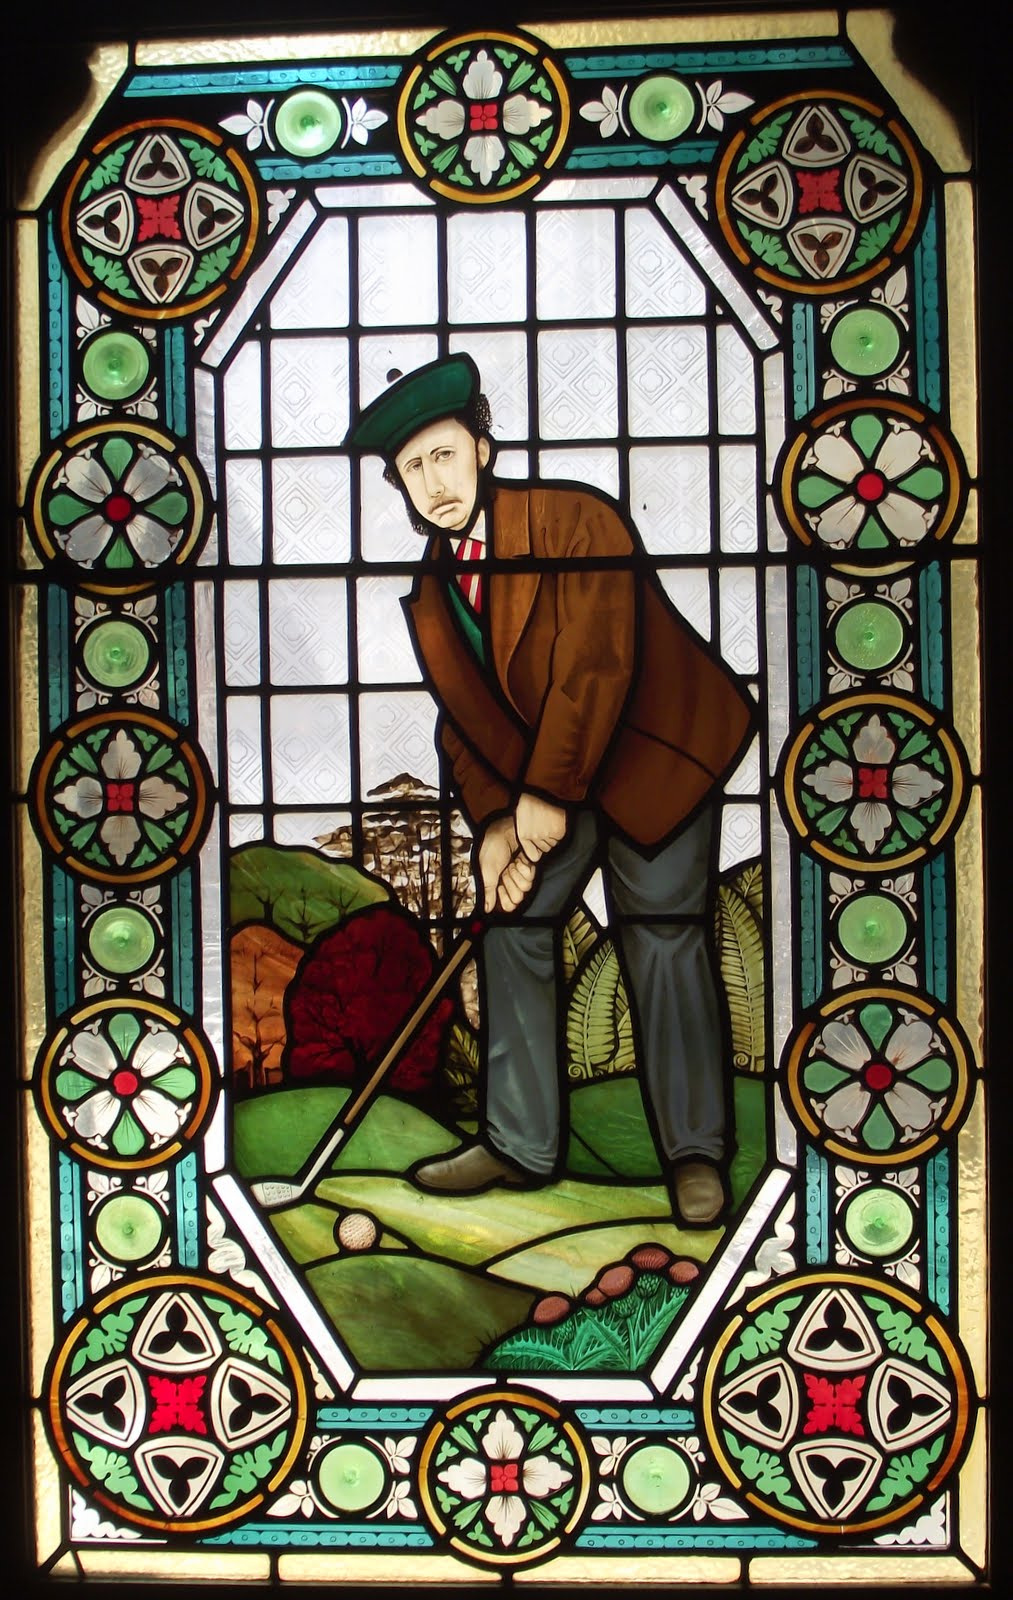 Young Tom Morris won four consecutive Open Championships, the first at the age of 17